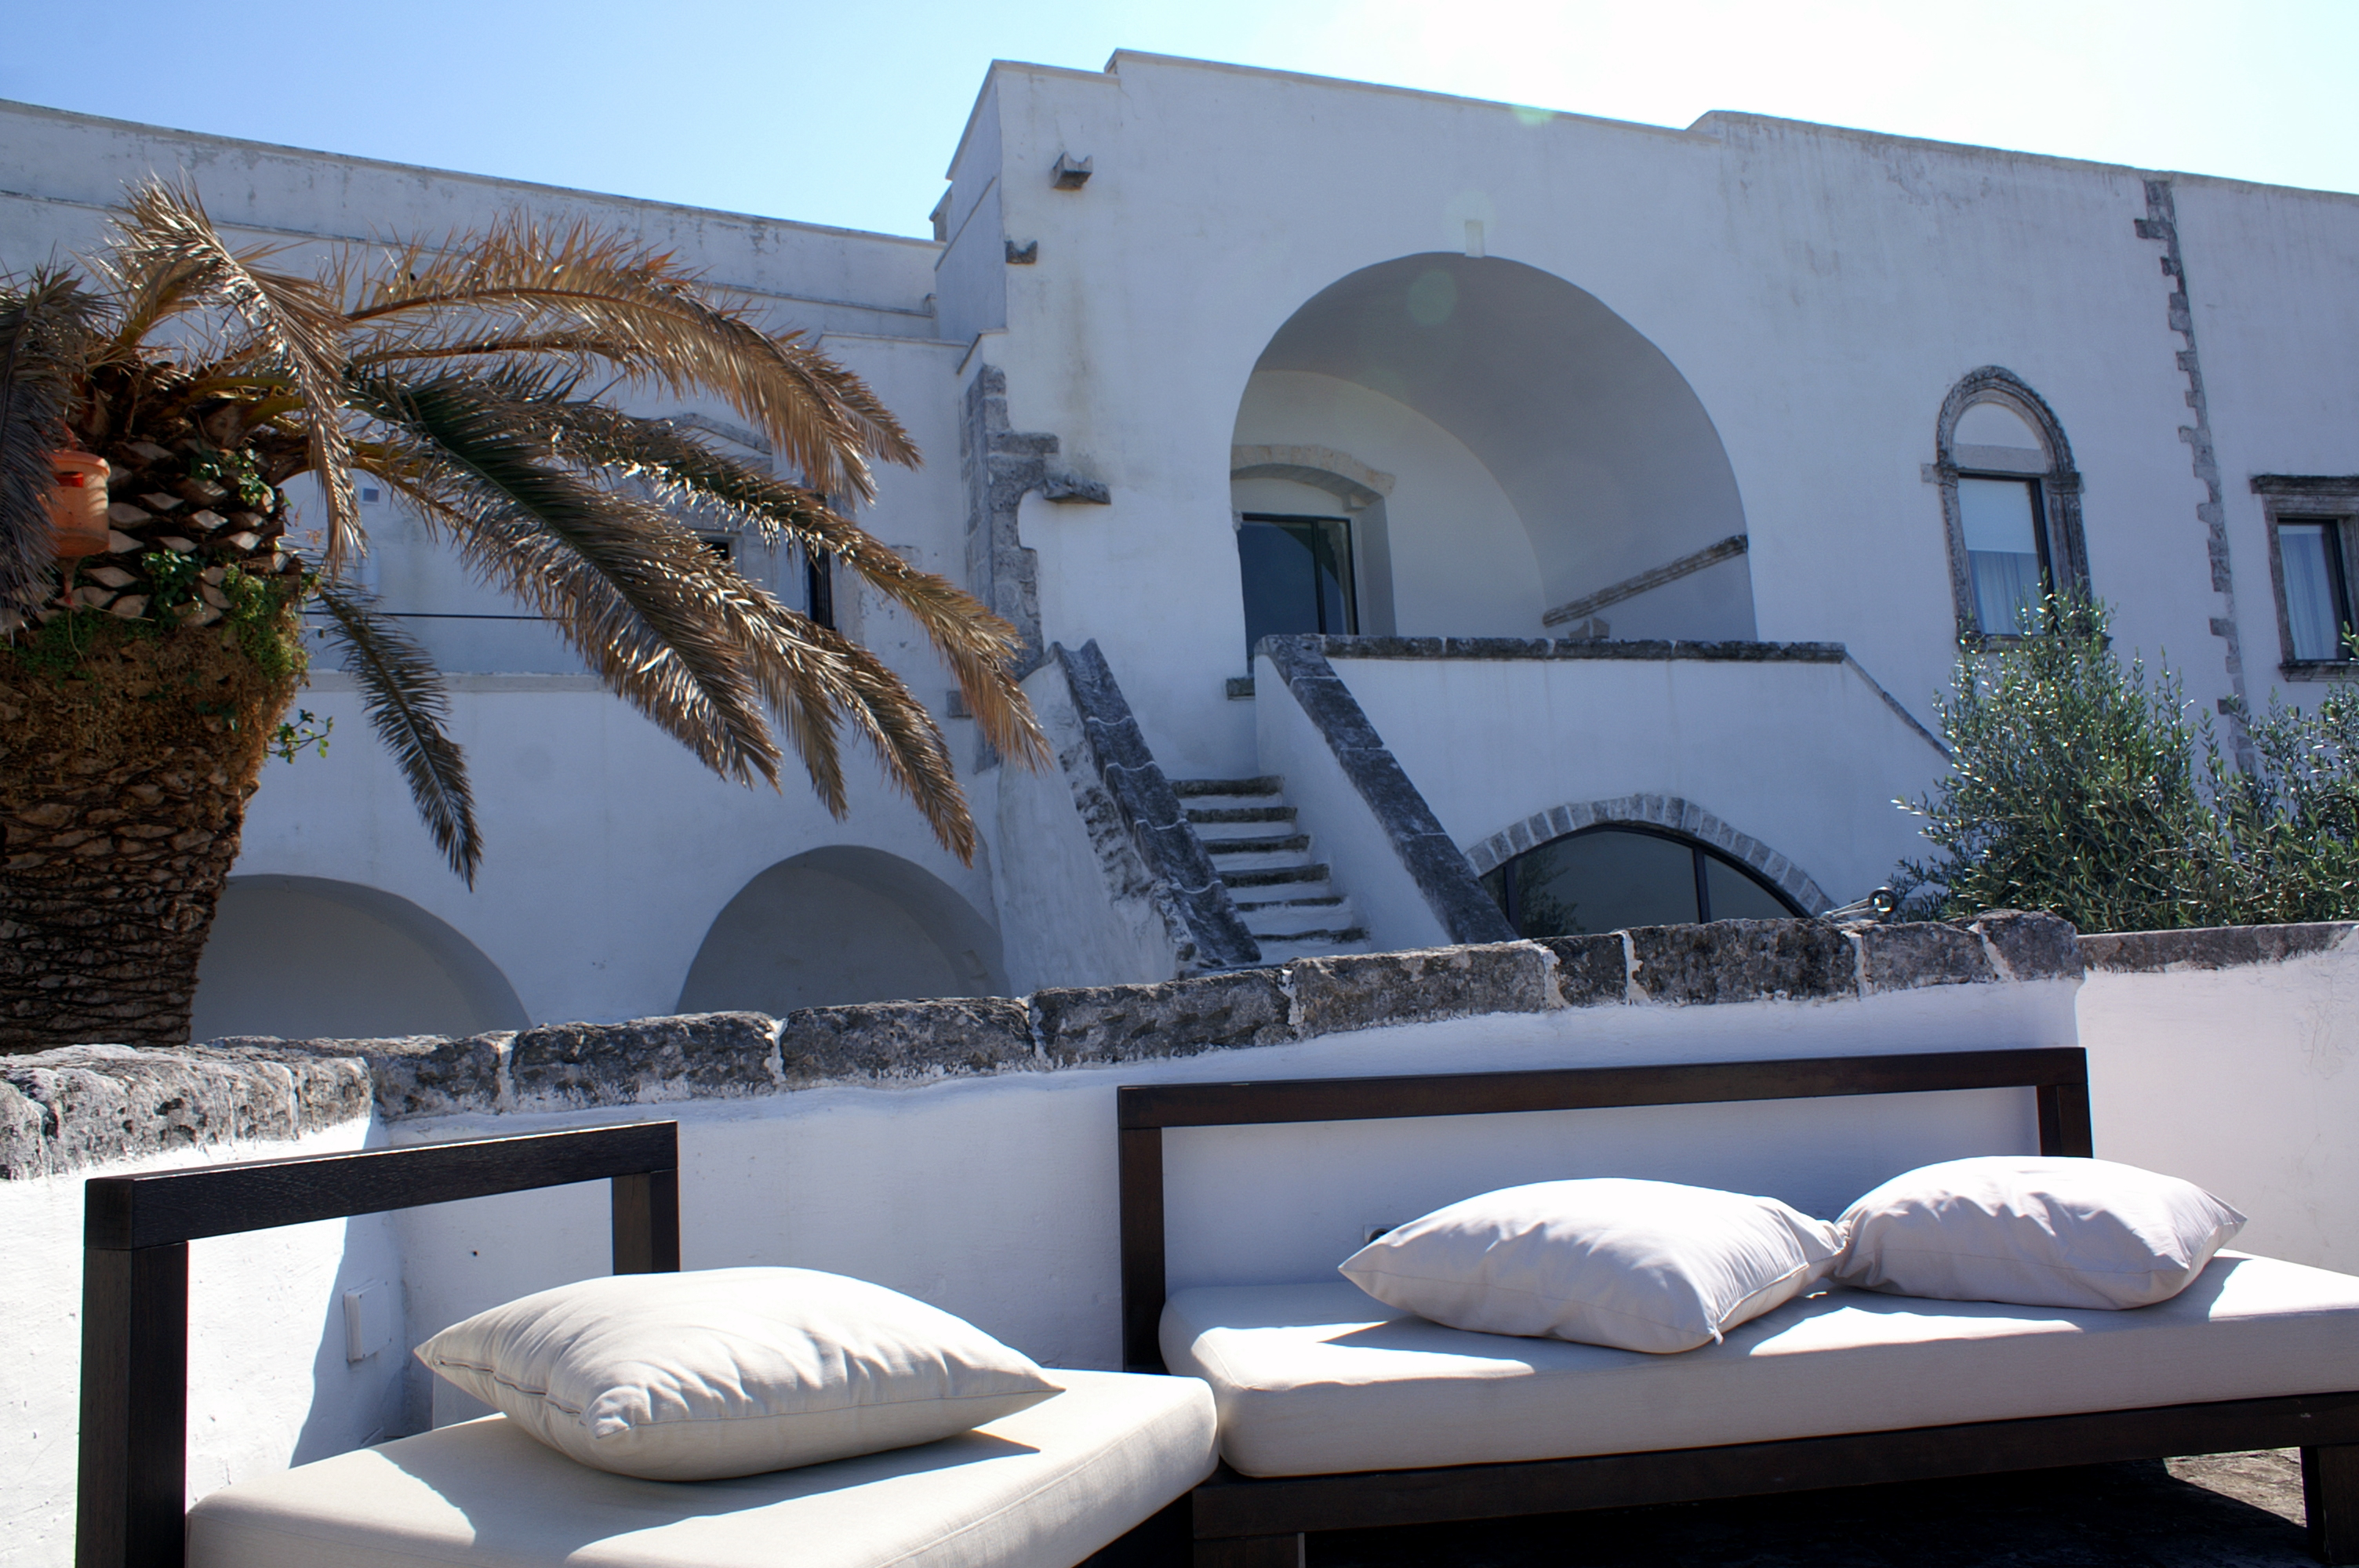 Outdoor lounge bed and cushions at the Sommita Relais hotel in Ostuni, Puglia